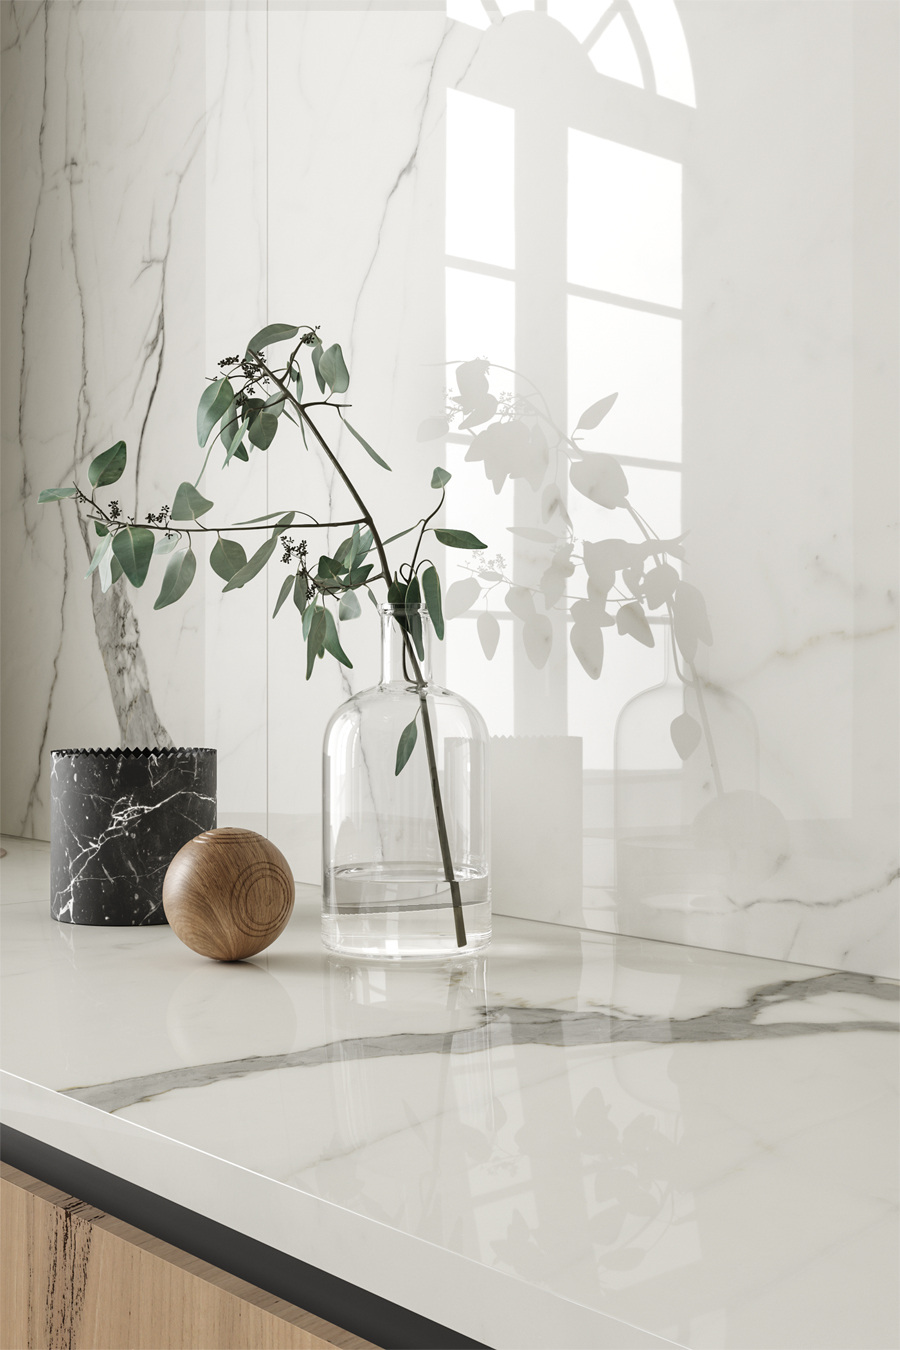 Vanity collection by #CottoDEste - images by #TerzoPiano - #marble classic beauty